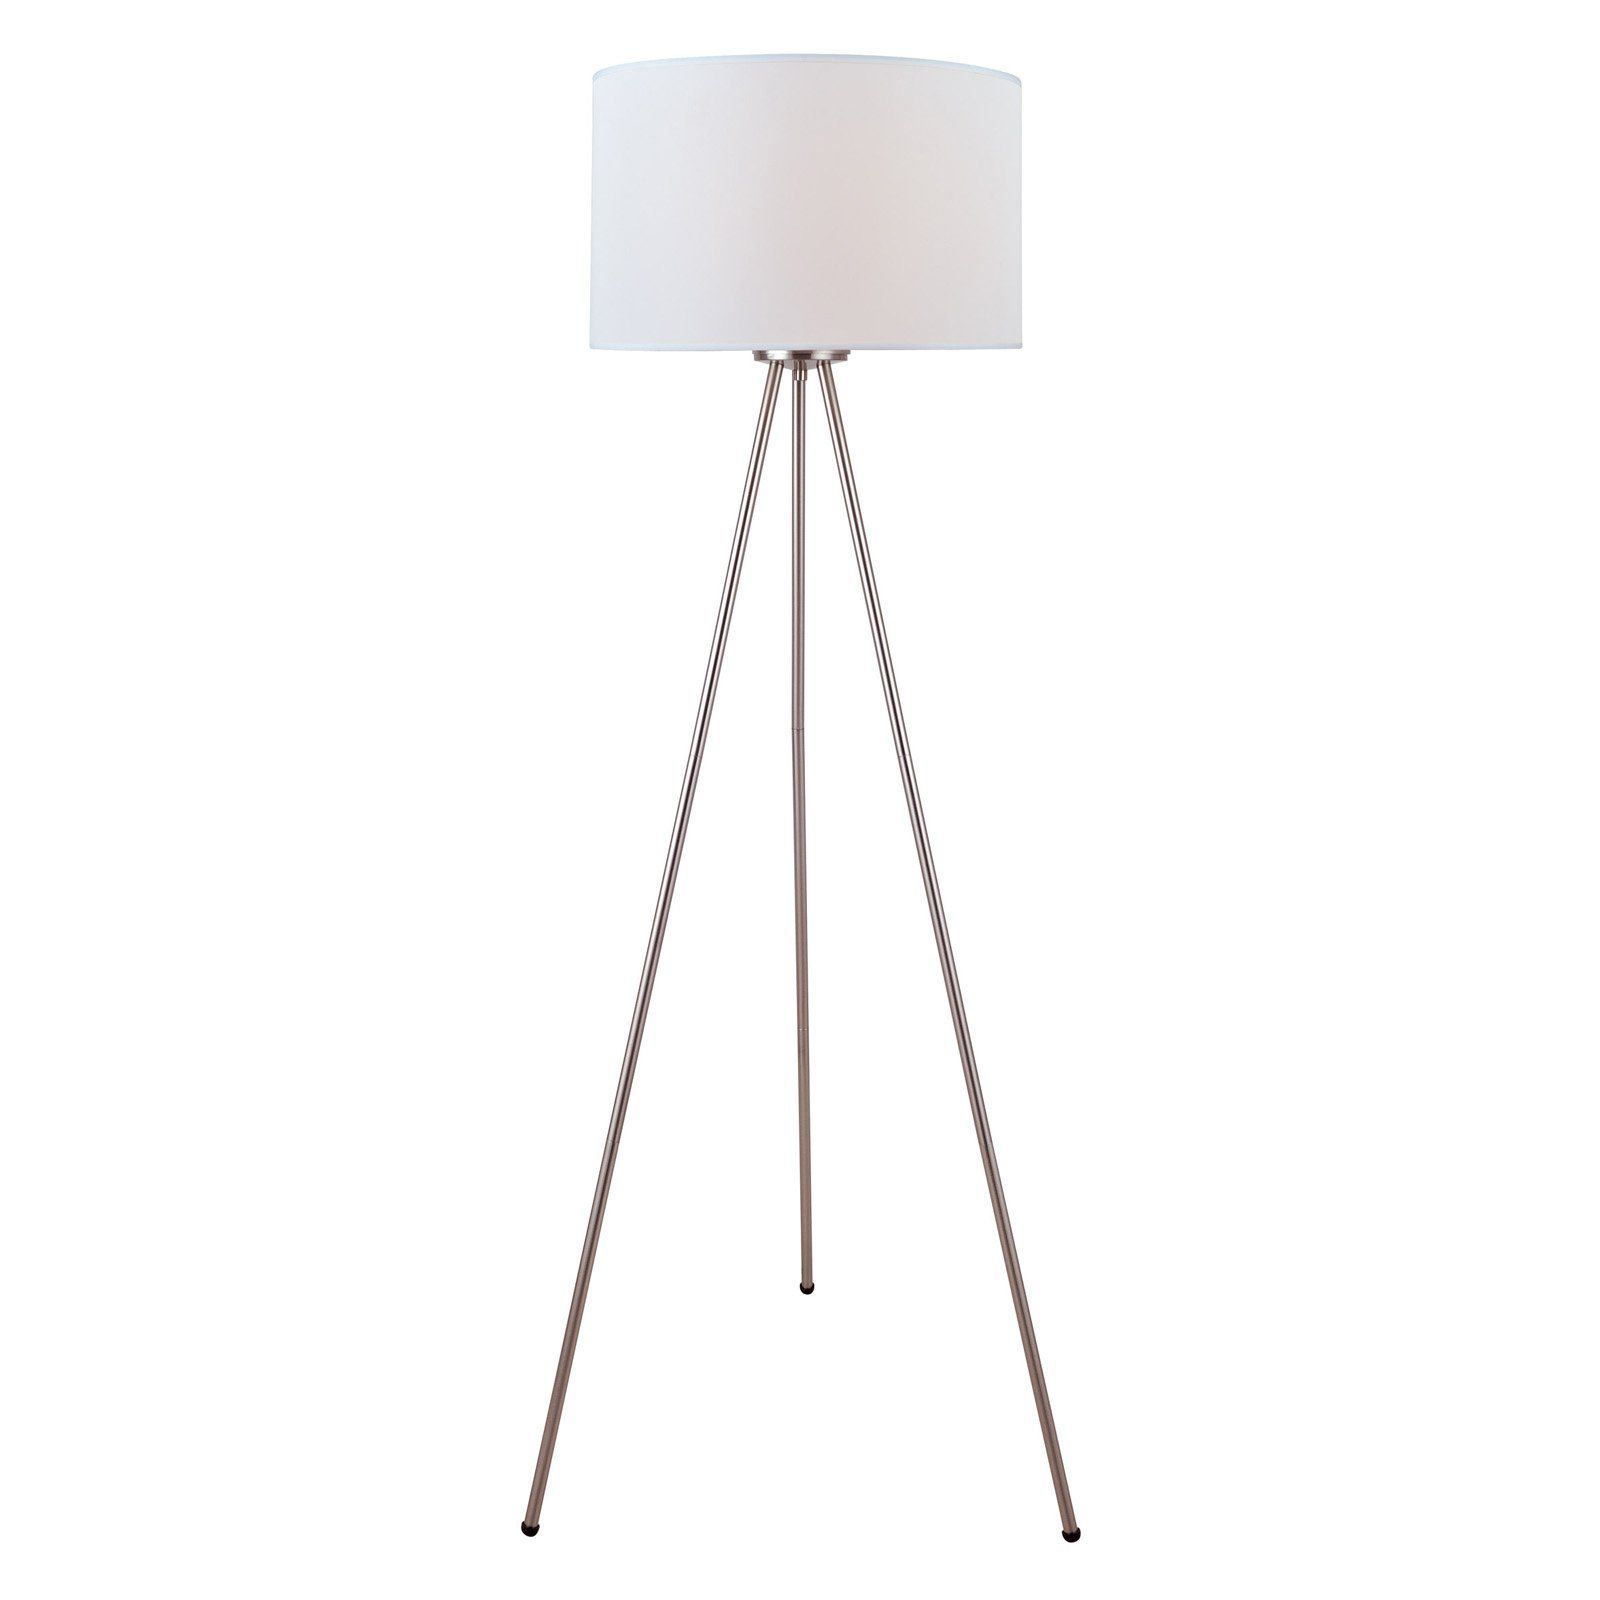 Lite Source Tullio Floor Lamp White Floor Lamp Steel Floor Lamps Floor Lamp